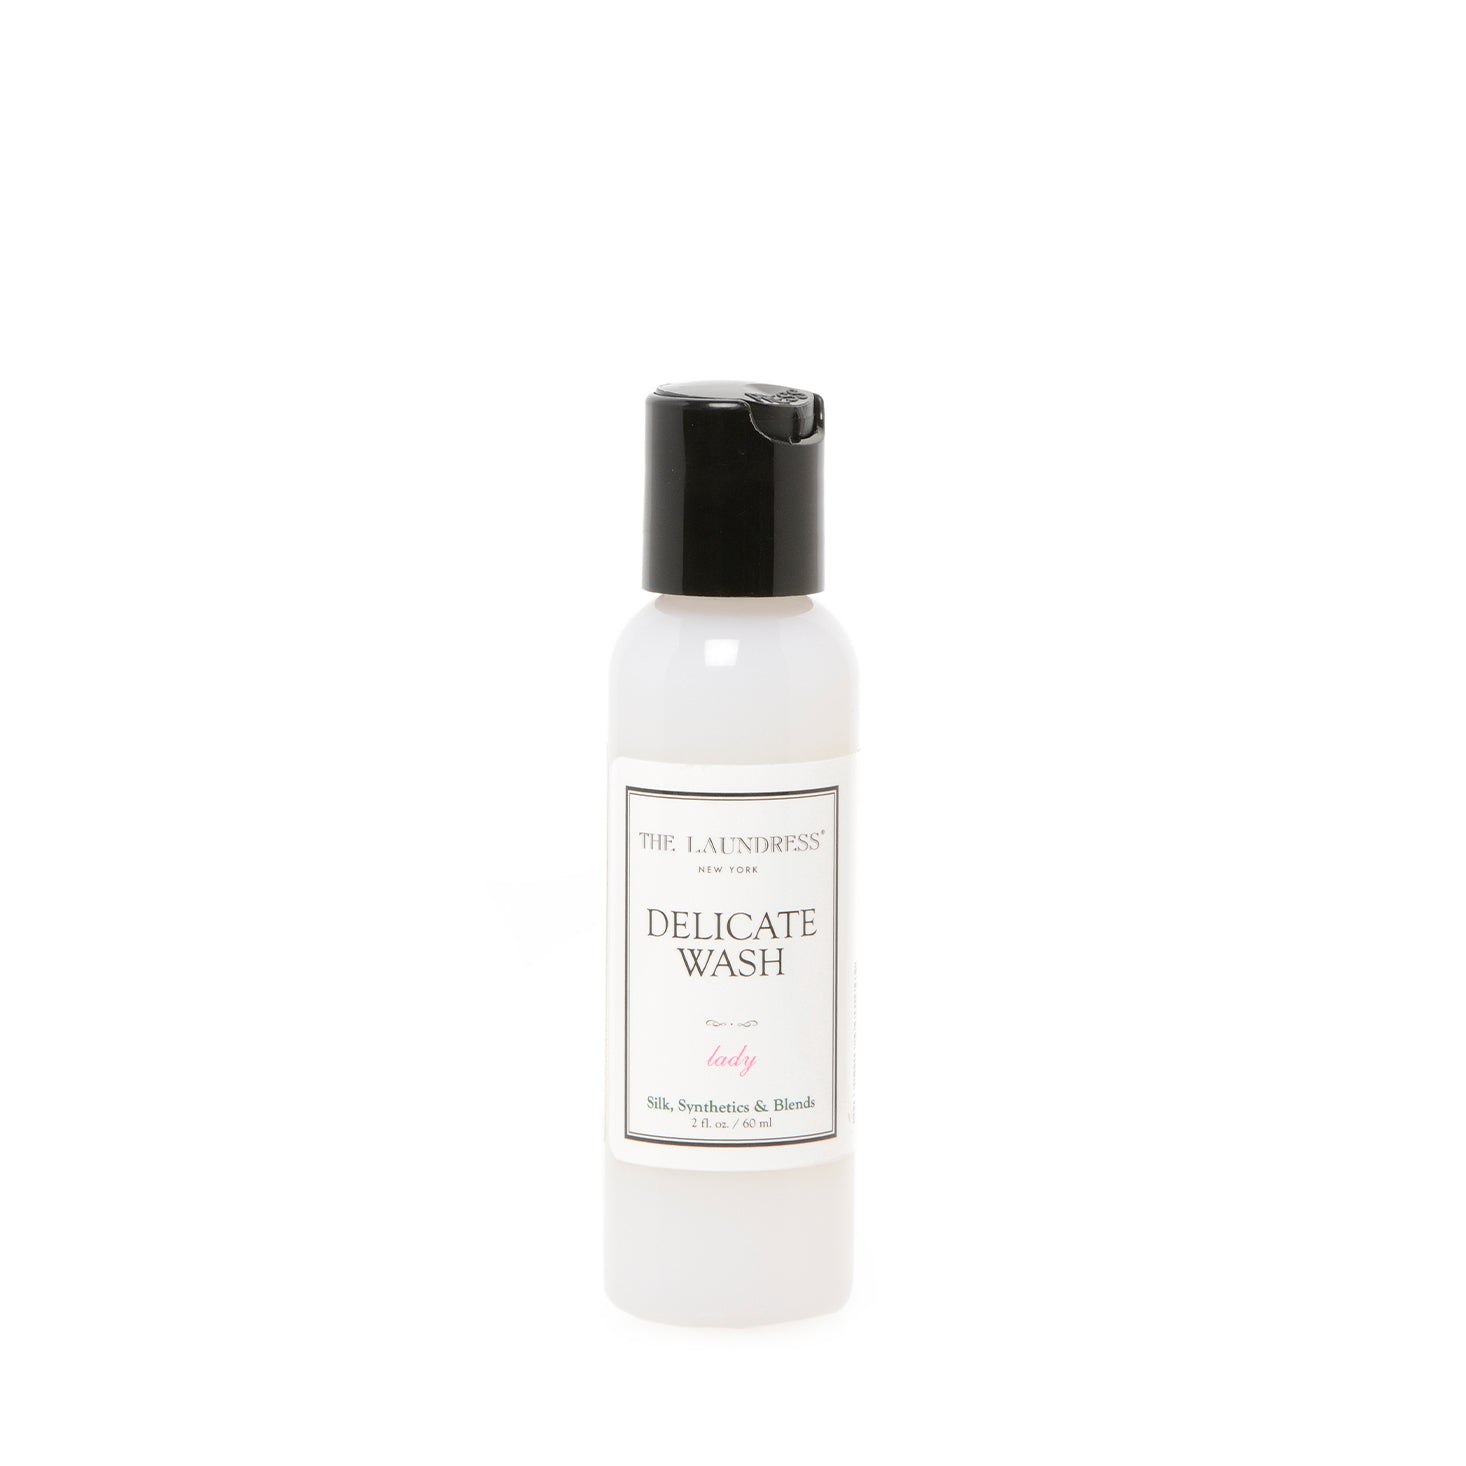 The Laundress Delicate Wash 60ml - Lady